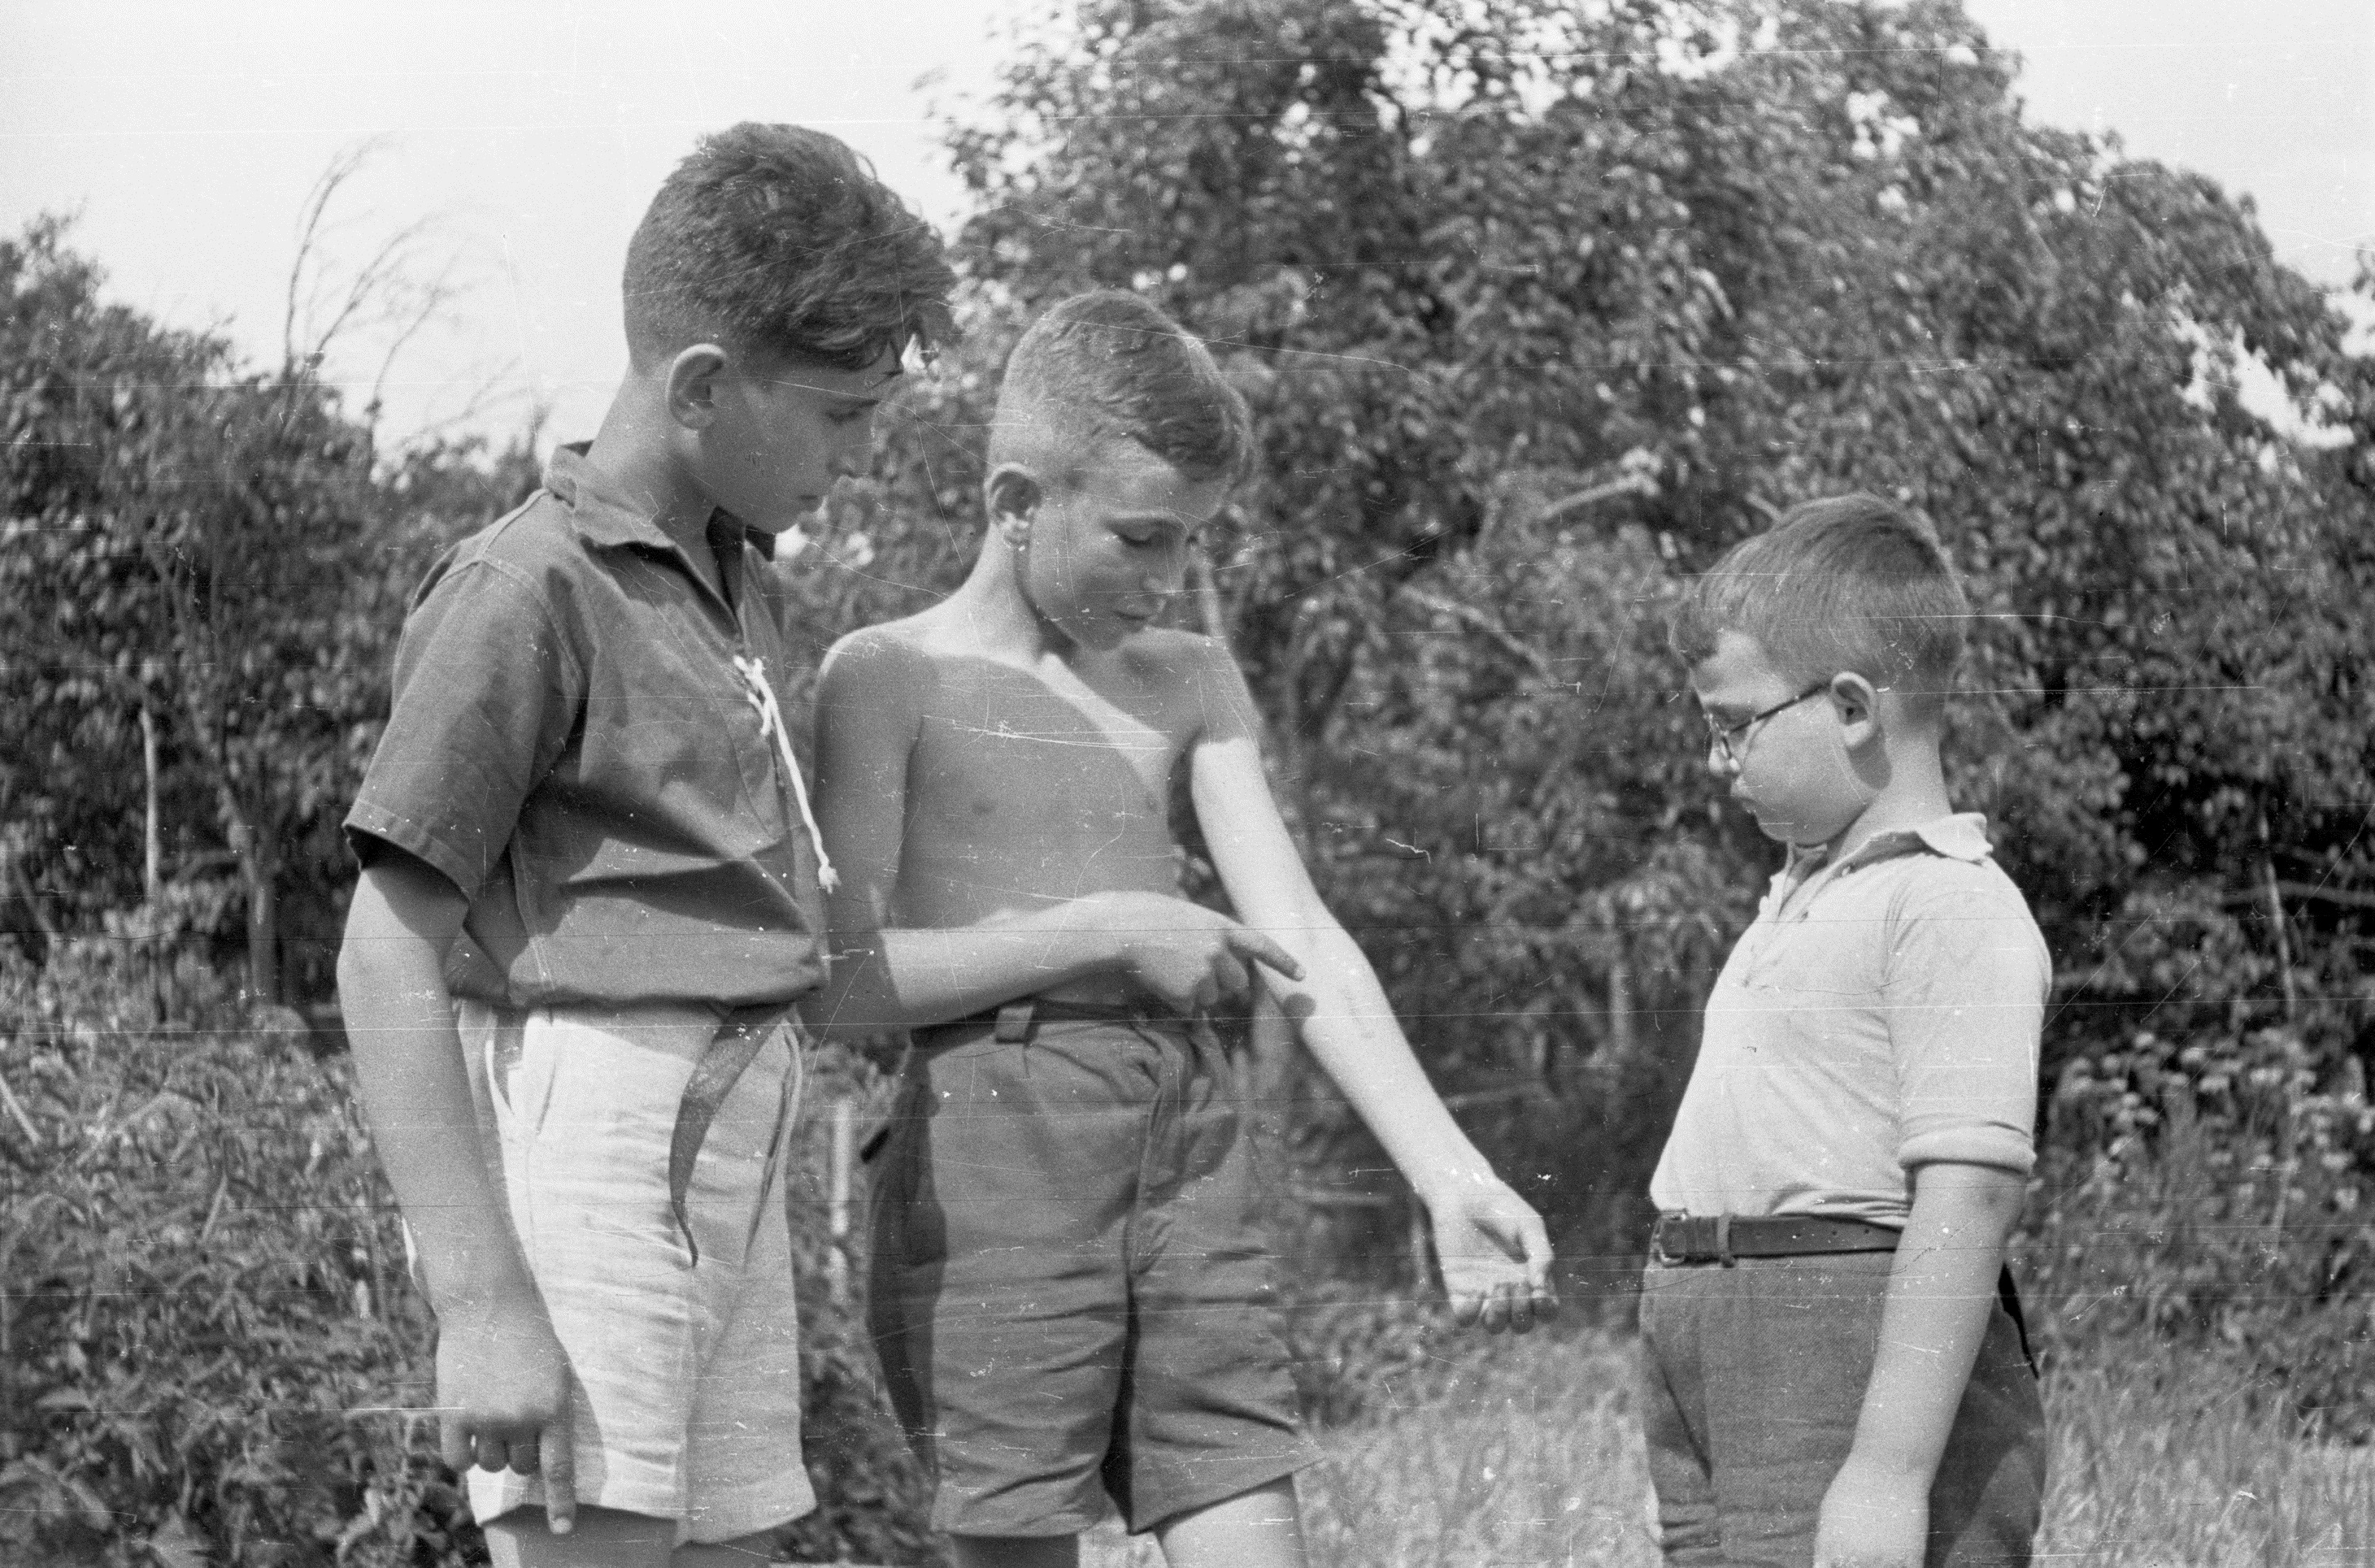 Displaying concentration camp tattoo in a Joint-sponsored summer camp, Pieszce (Pietrolesie), Poland, 1947.